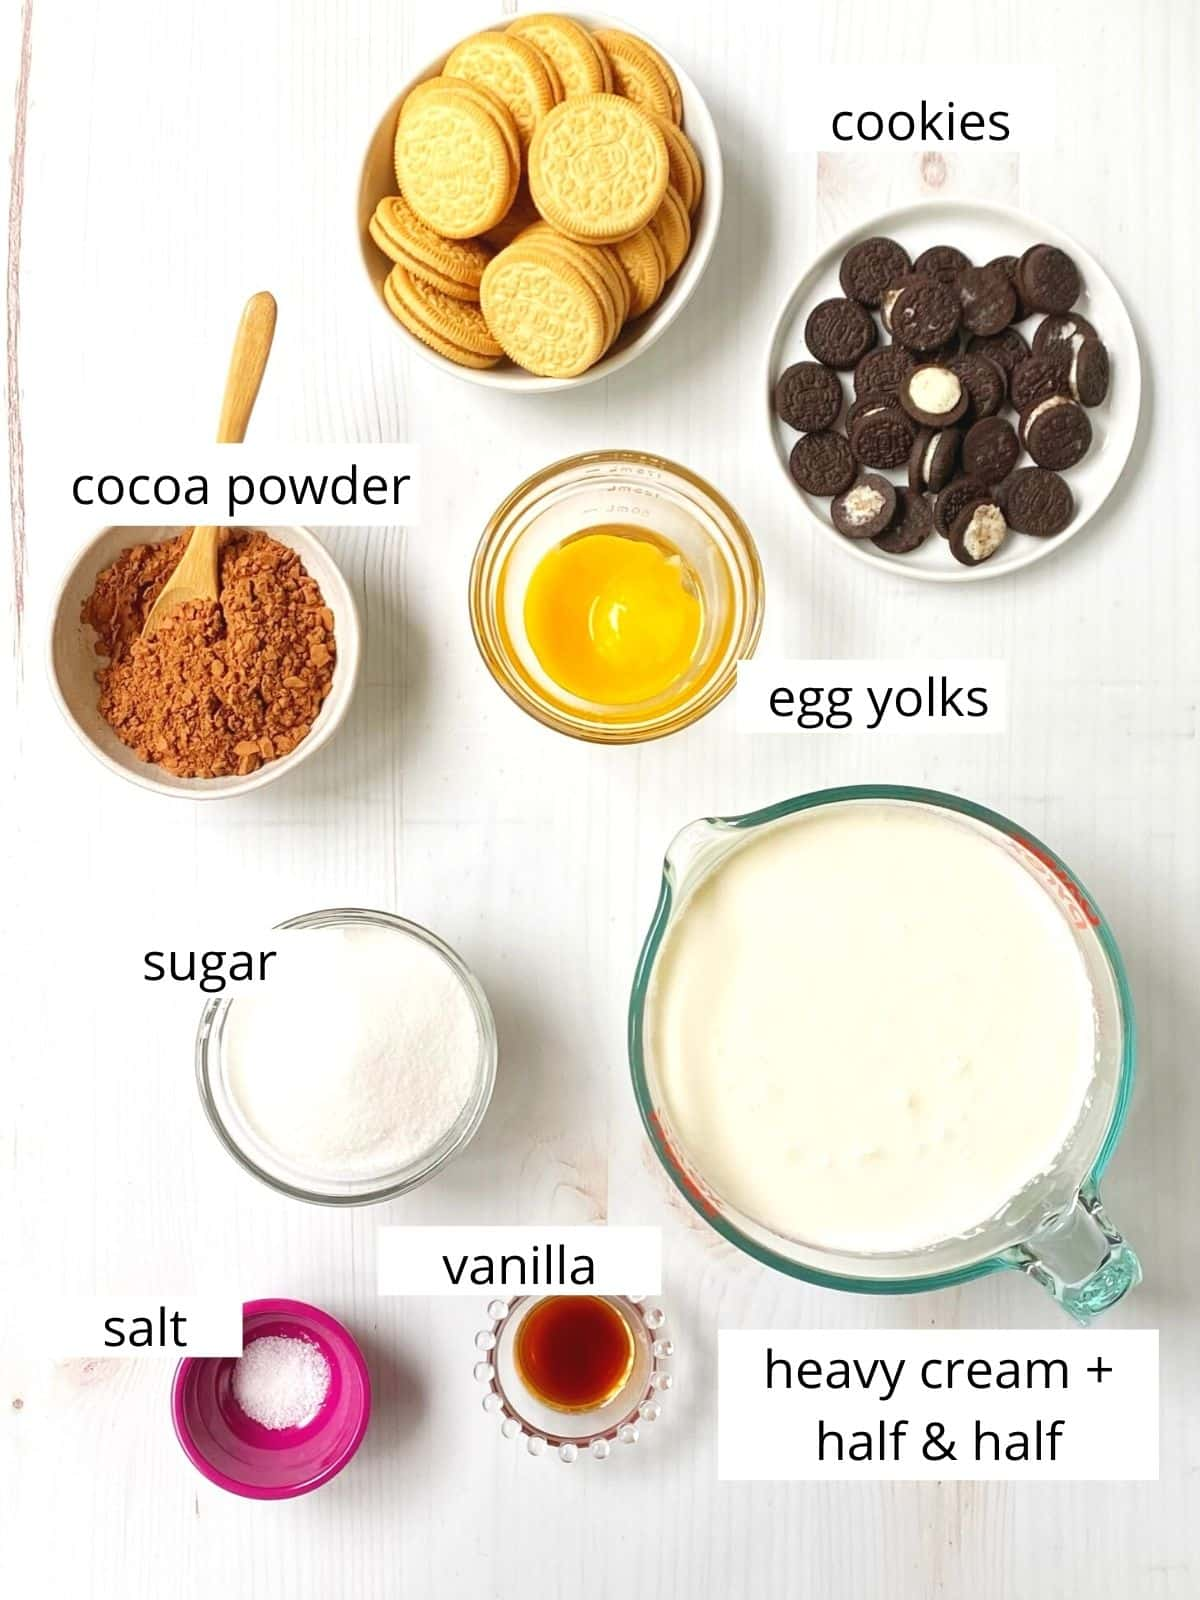 ingredients in ice cream featuring cream, sugar, and oreo cookies.